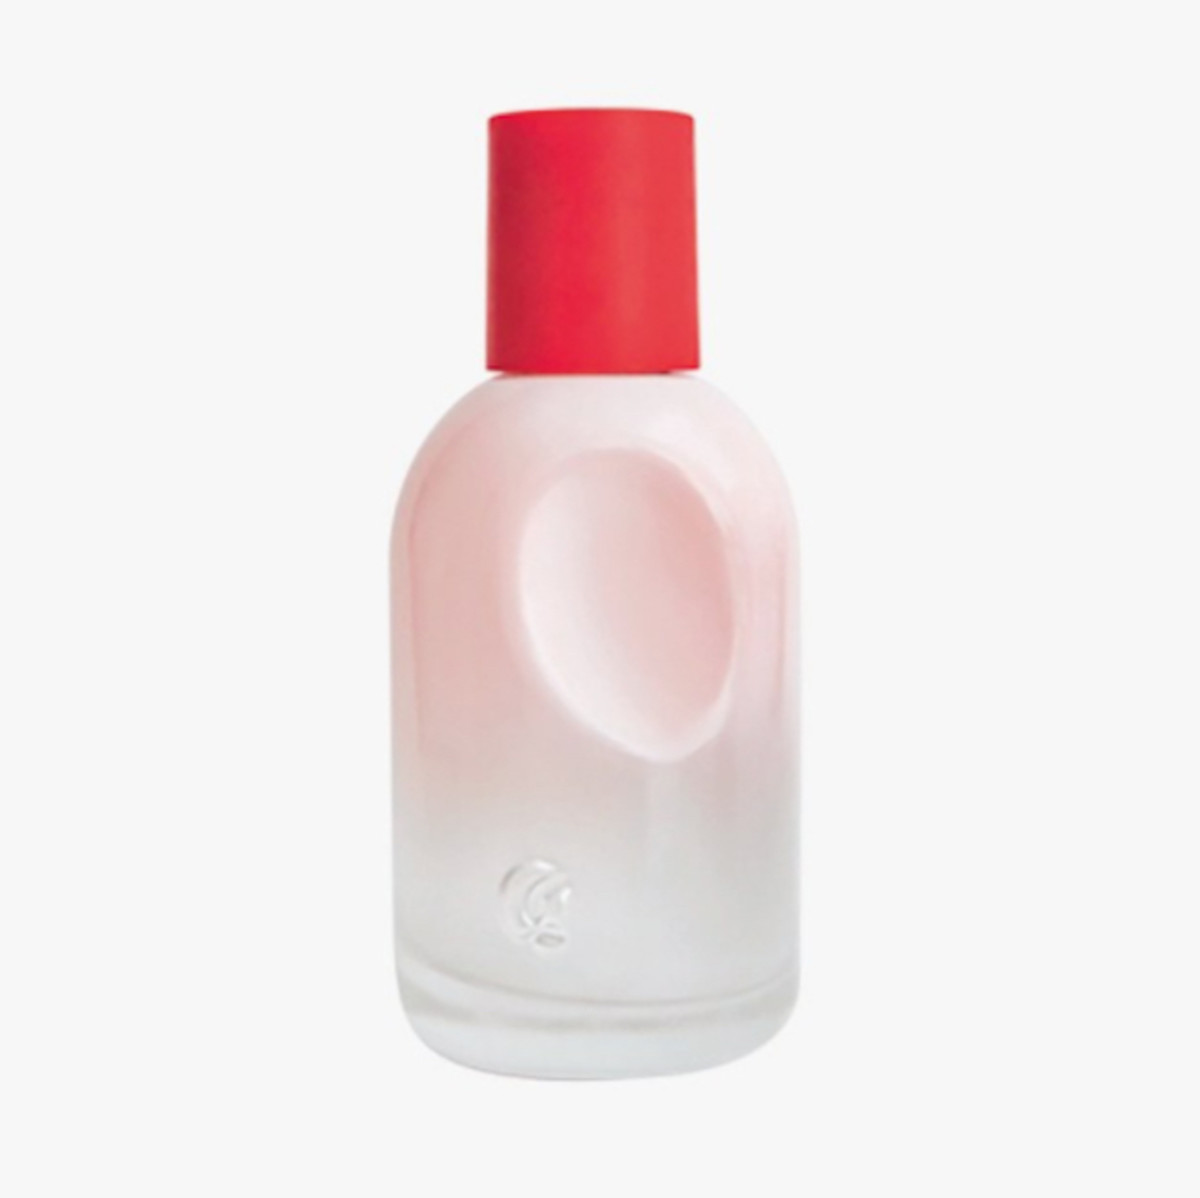 Glossier You, $60, available at Glossier. Photo: Courtesy of Glossier